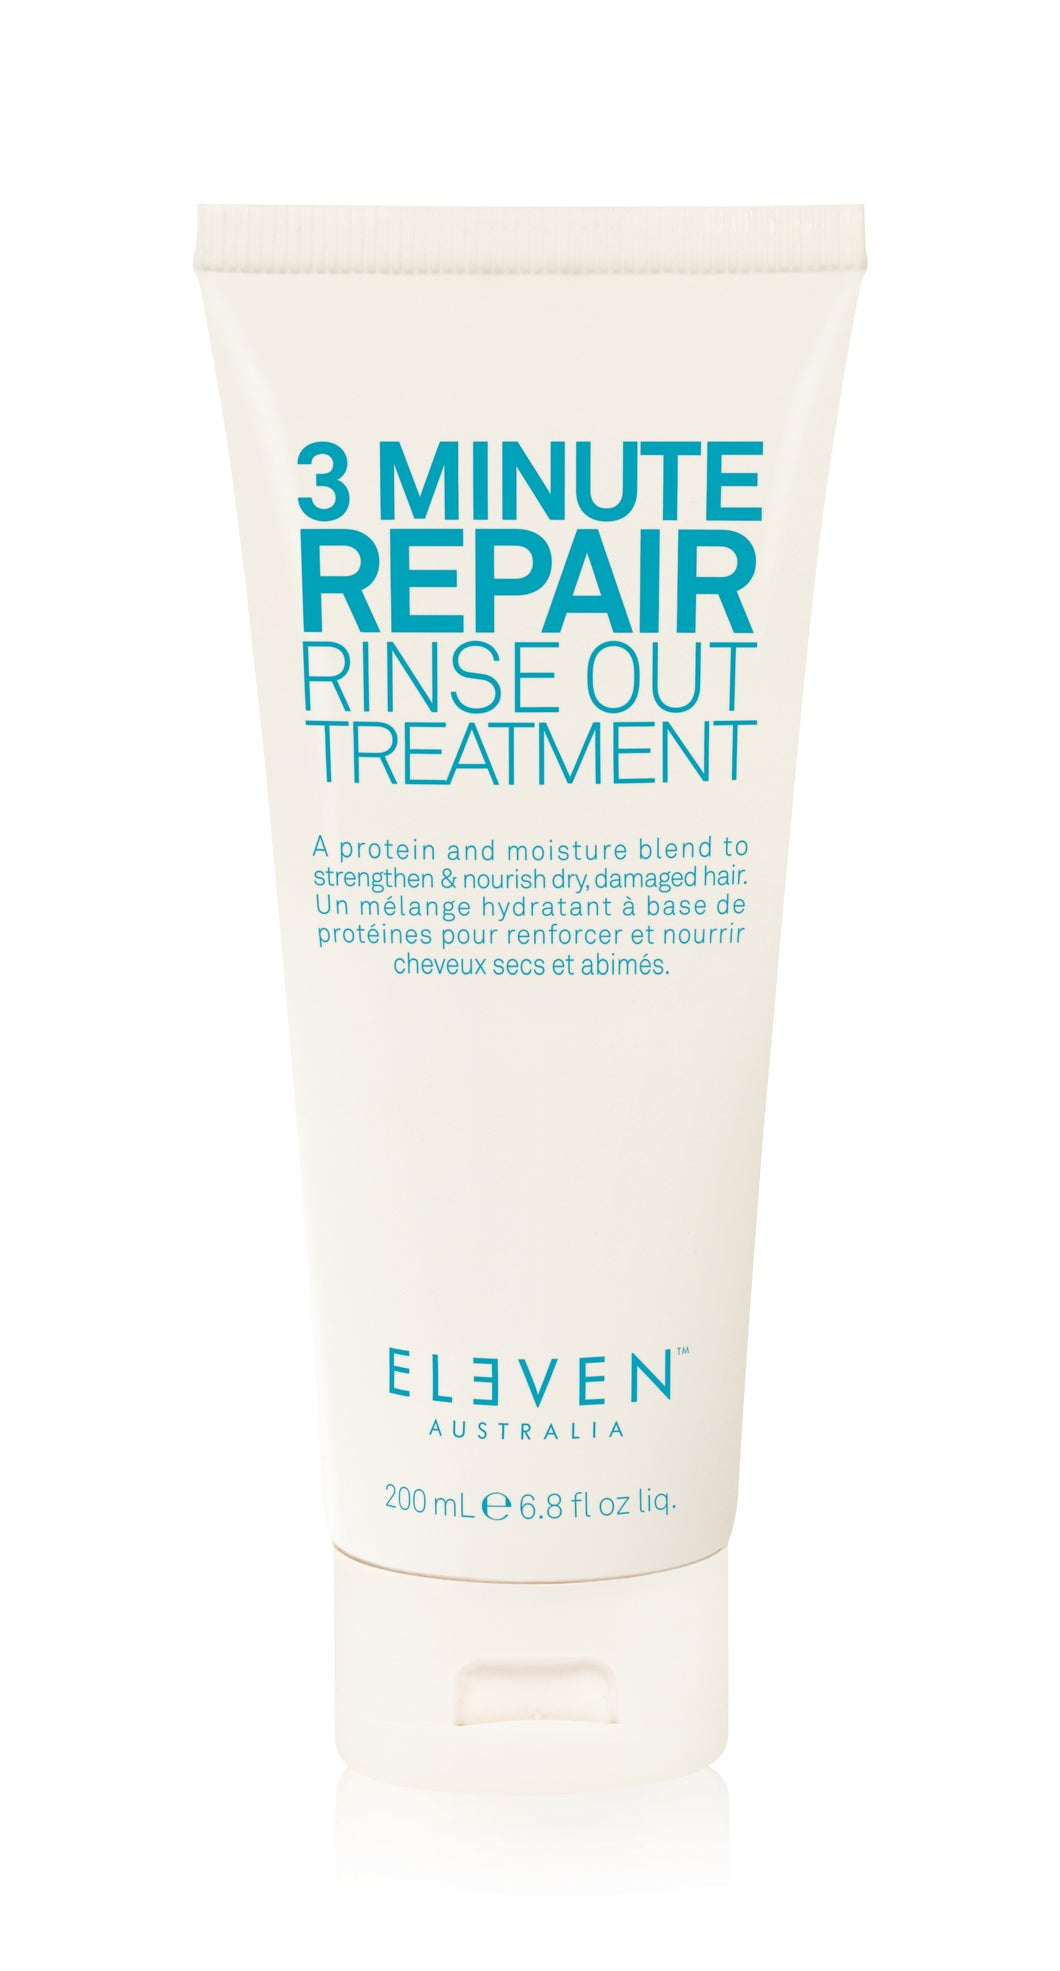 ELEVEN 3 Minute Repair Rinse Out Treatment